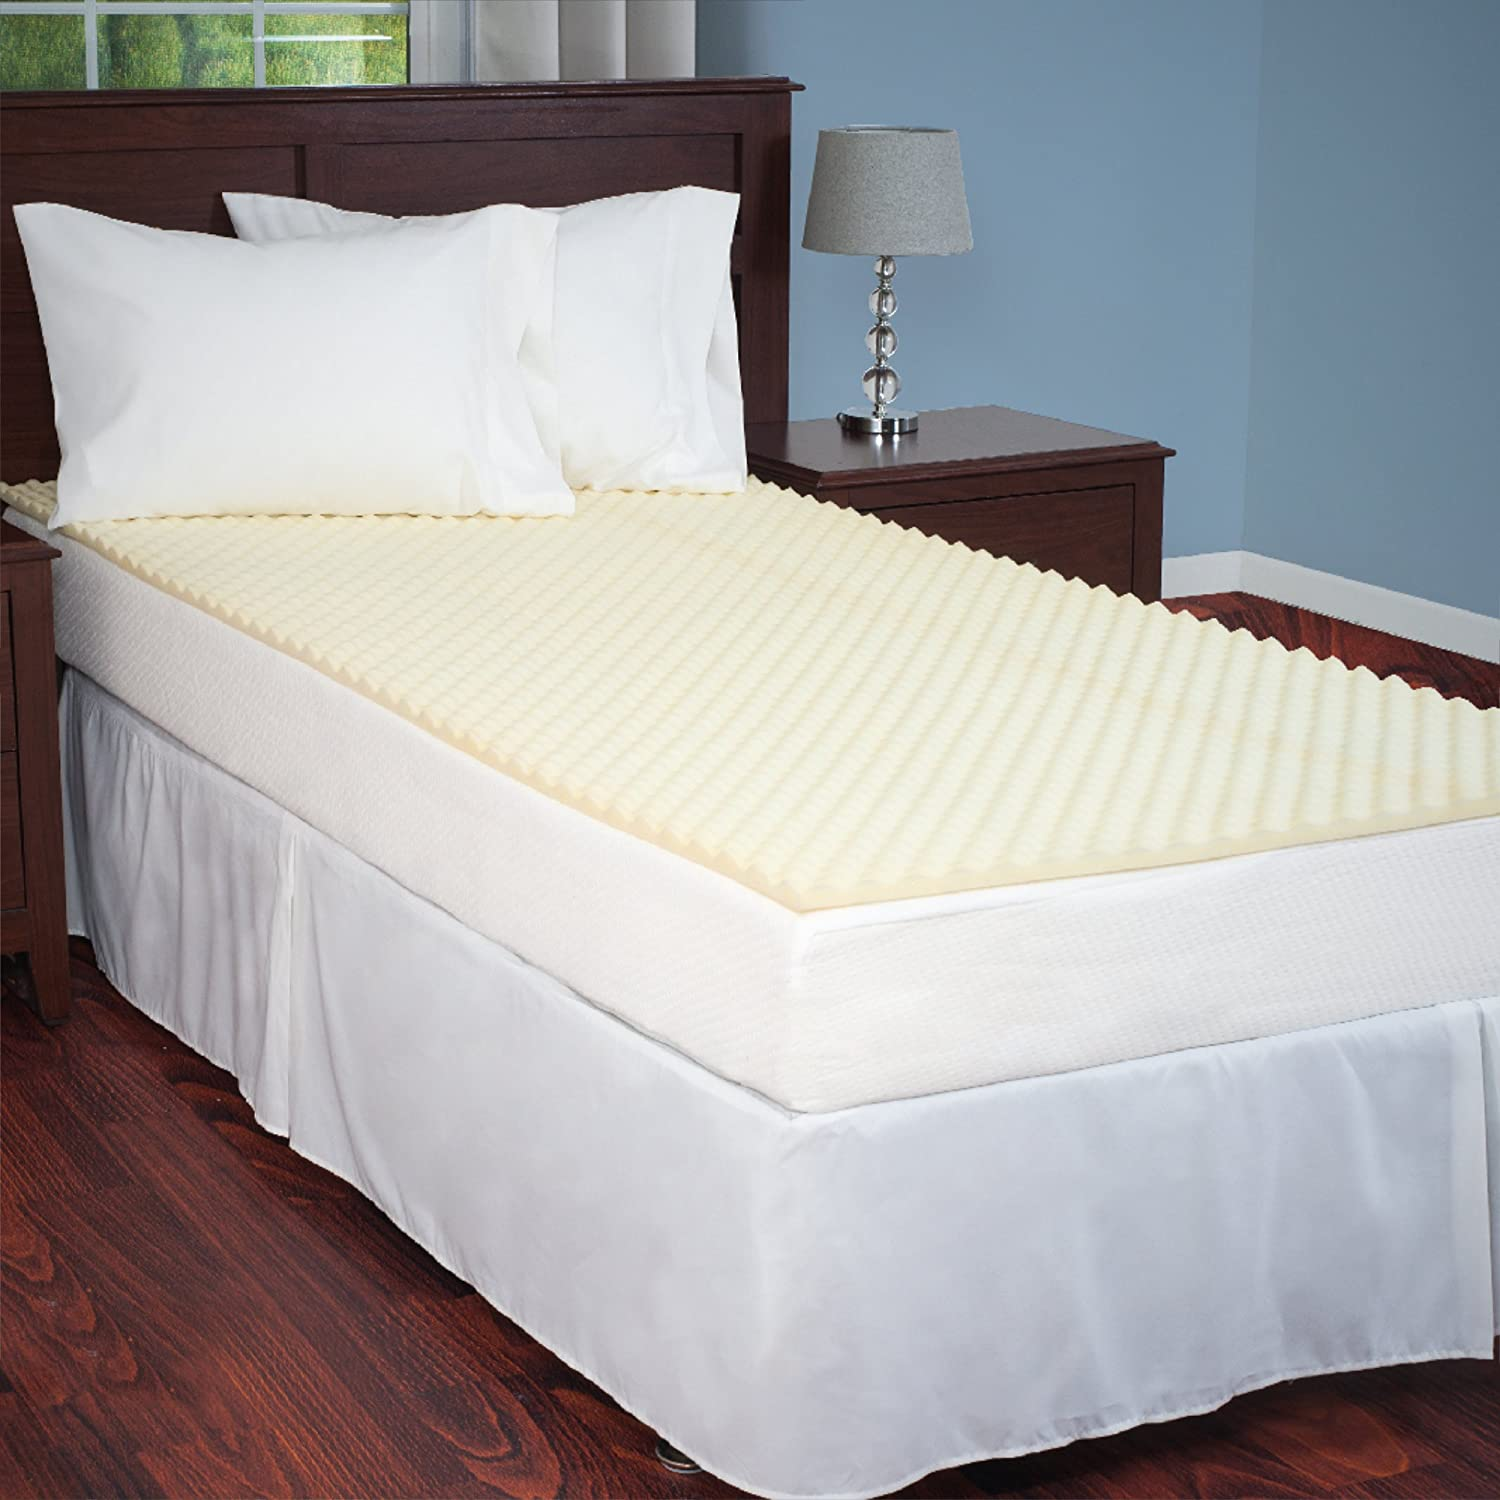 Amazon.com: Egg Crate Mattress Topper Twin XL designed to add extra comfort  and support. Great for dorms, hospital beds, cots, campers, more -by  Everyday ...